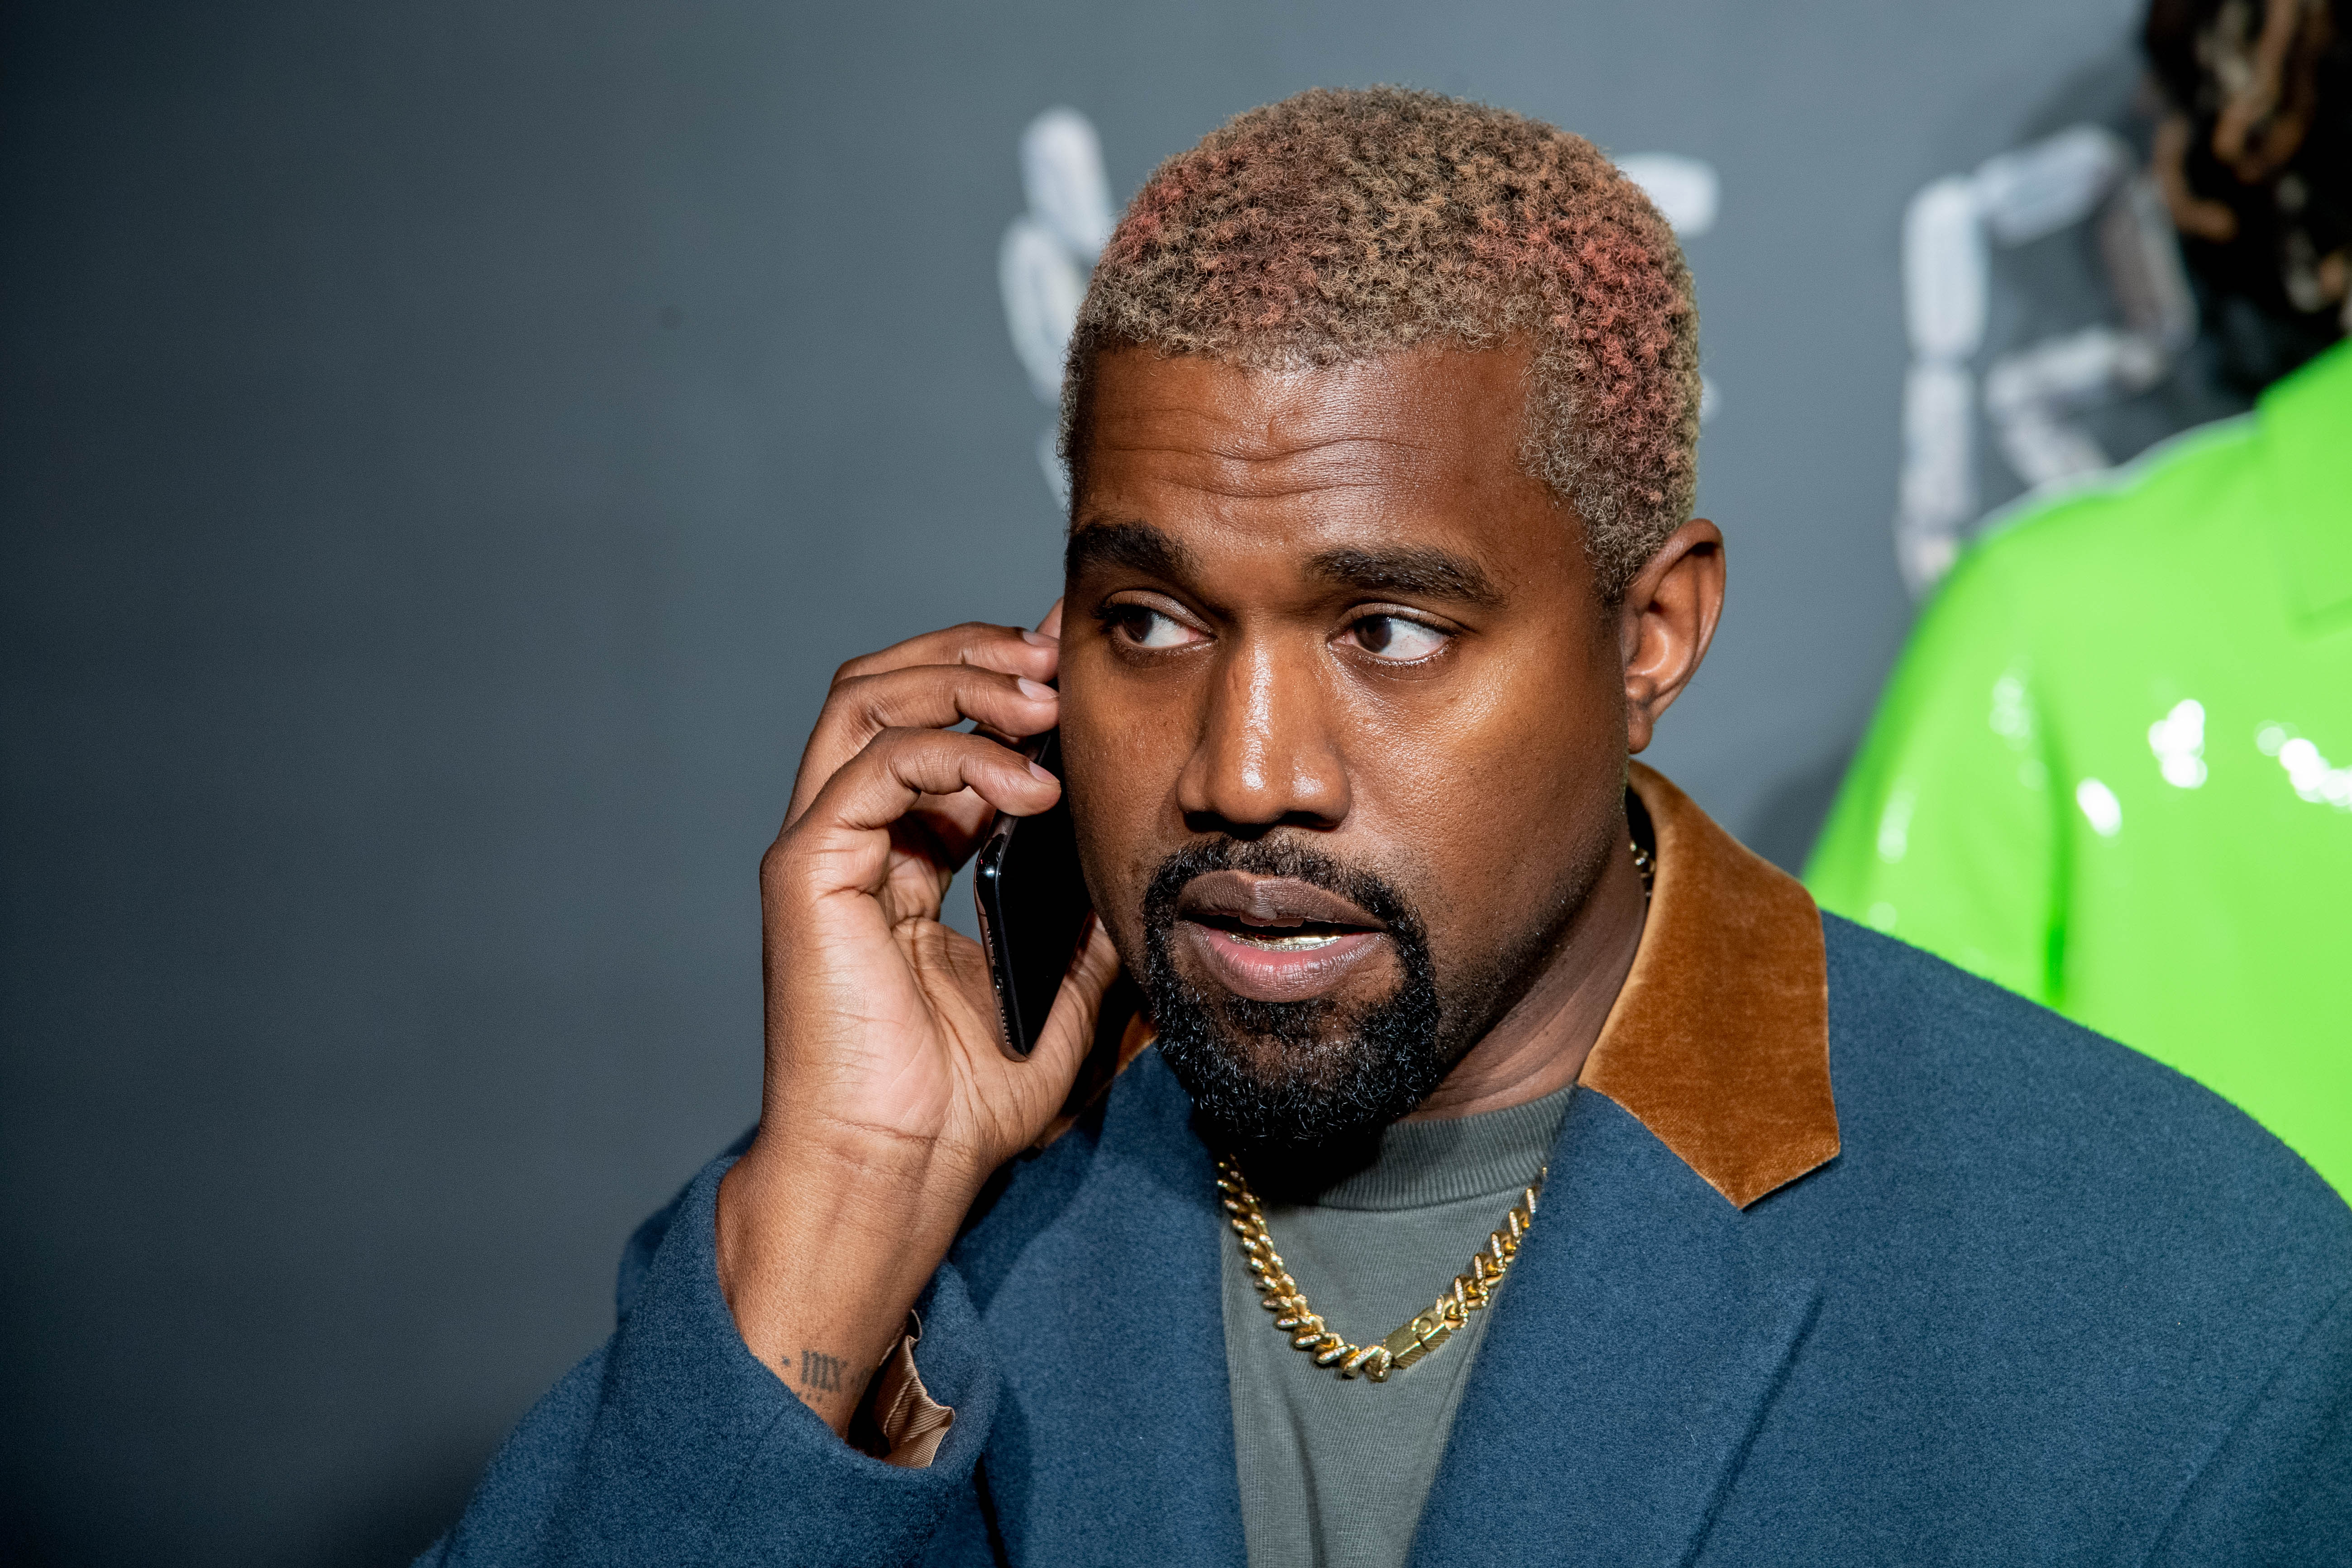 Kanye Turns His Trigger Fingers To Twitter Fingers In Recent Drake Rant